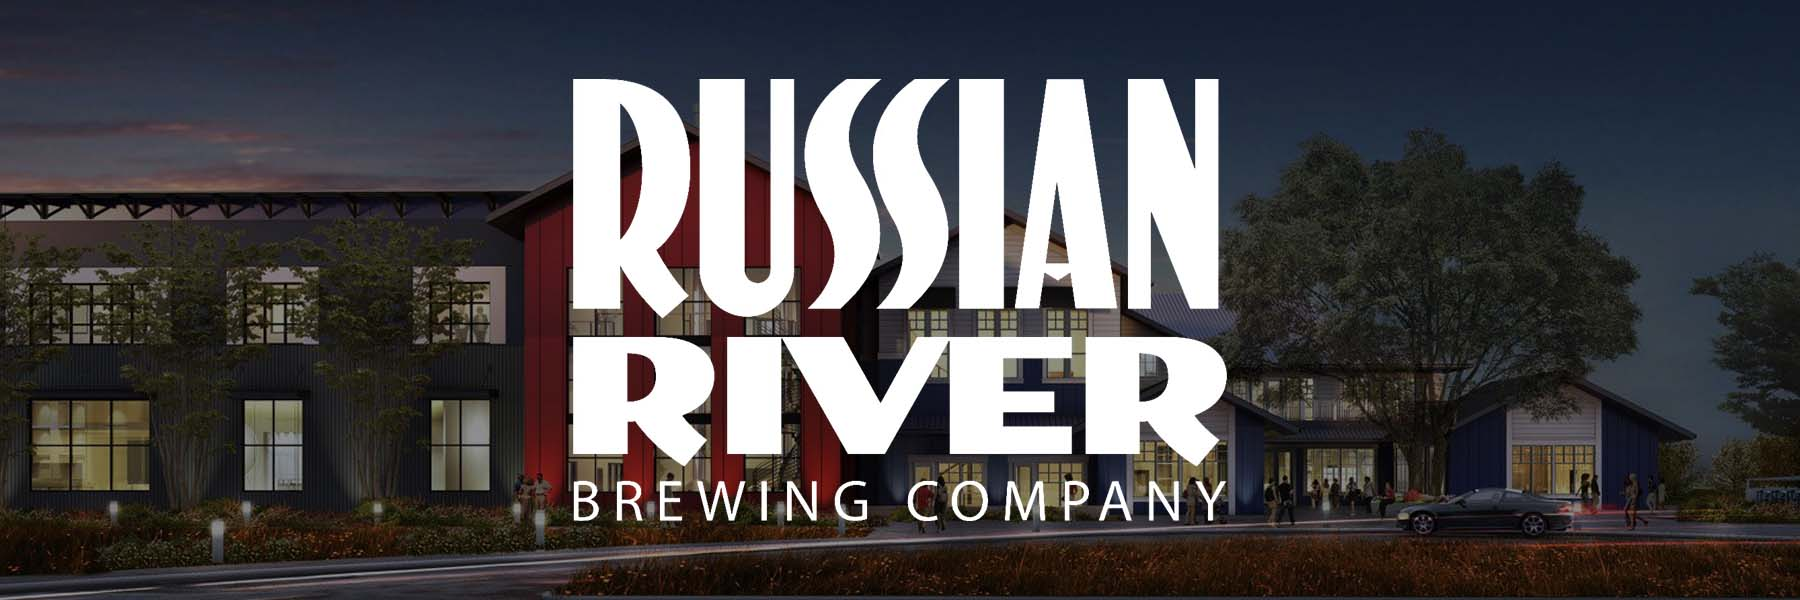 Russian River | 5 bbl Pilot Brewhouse